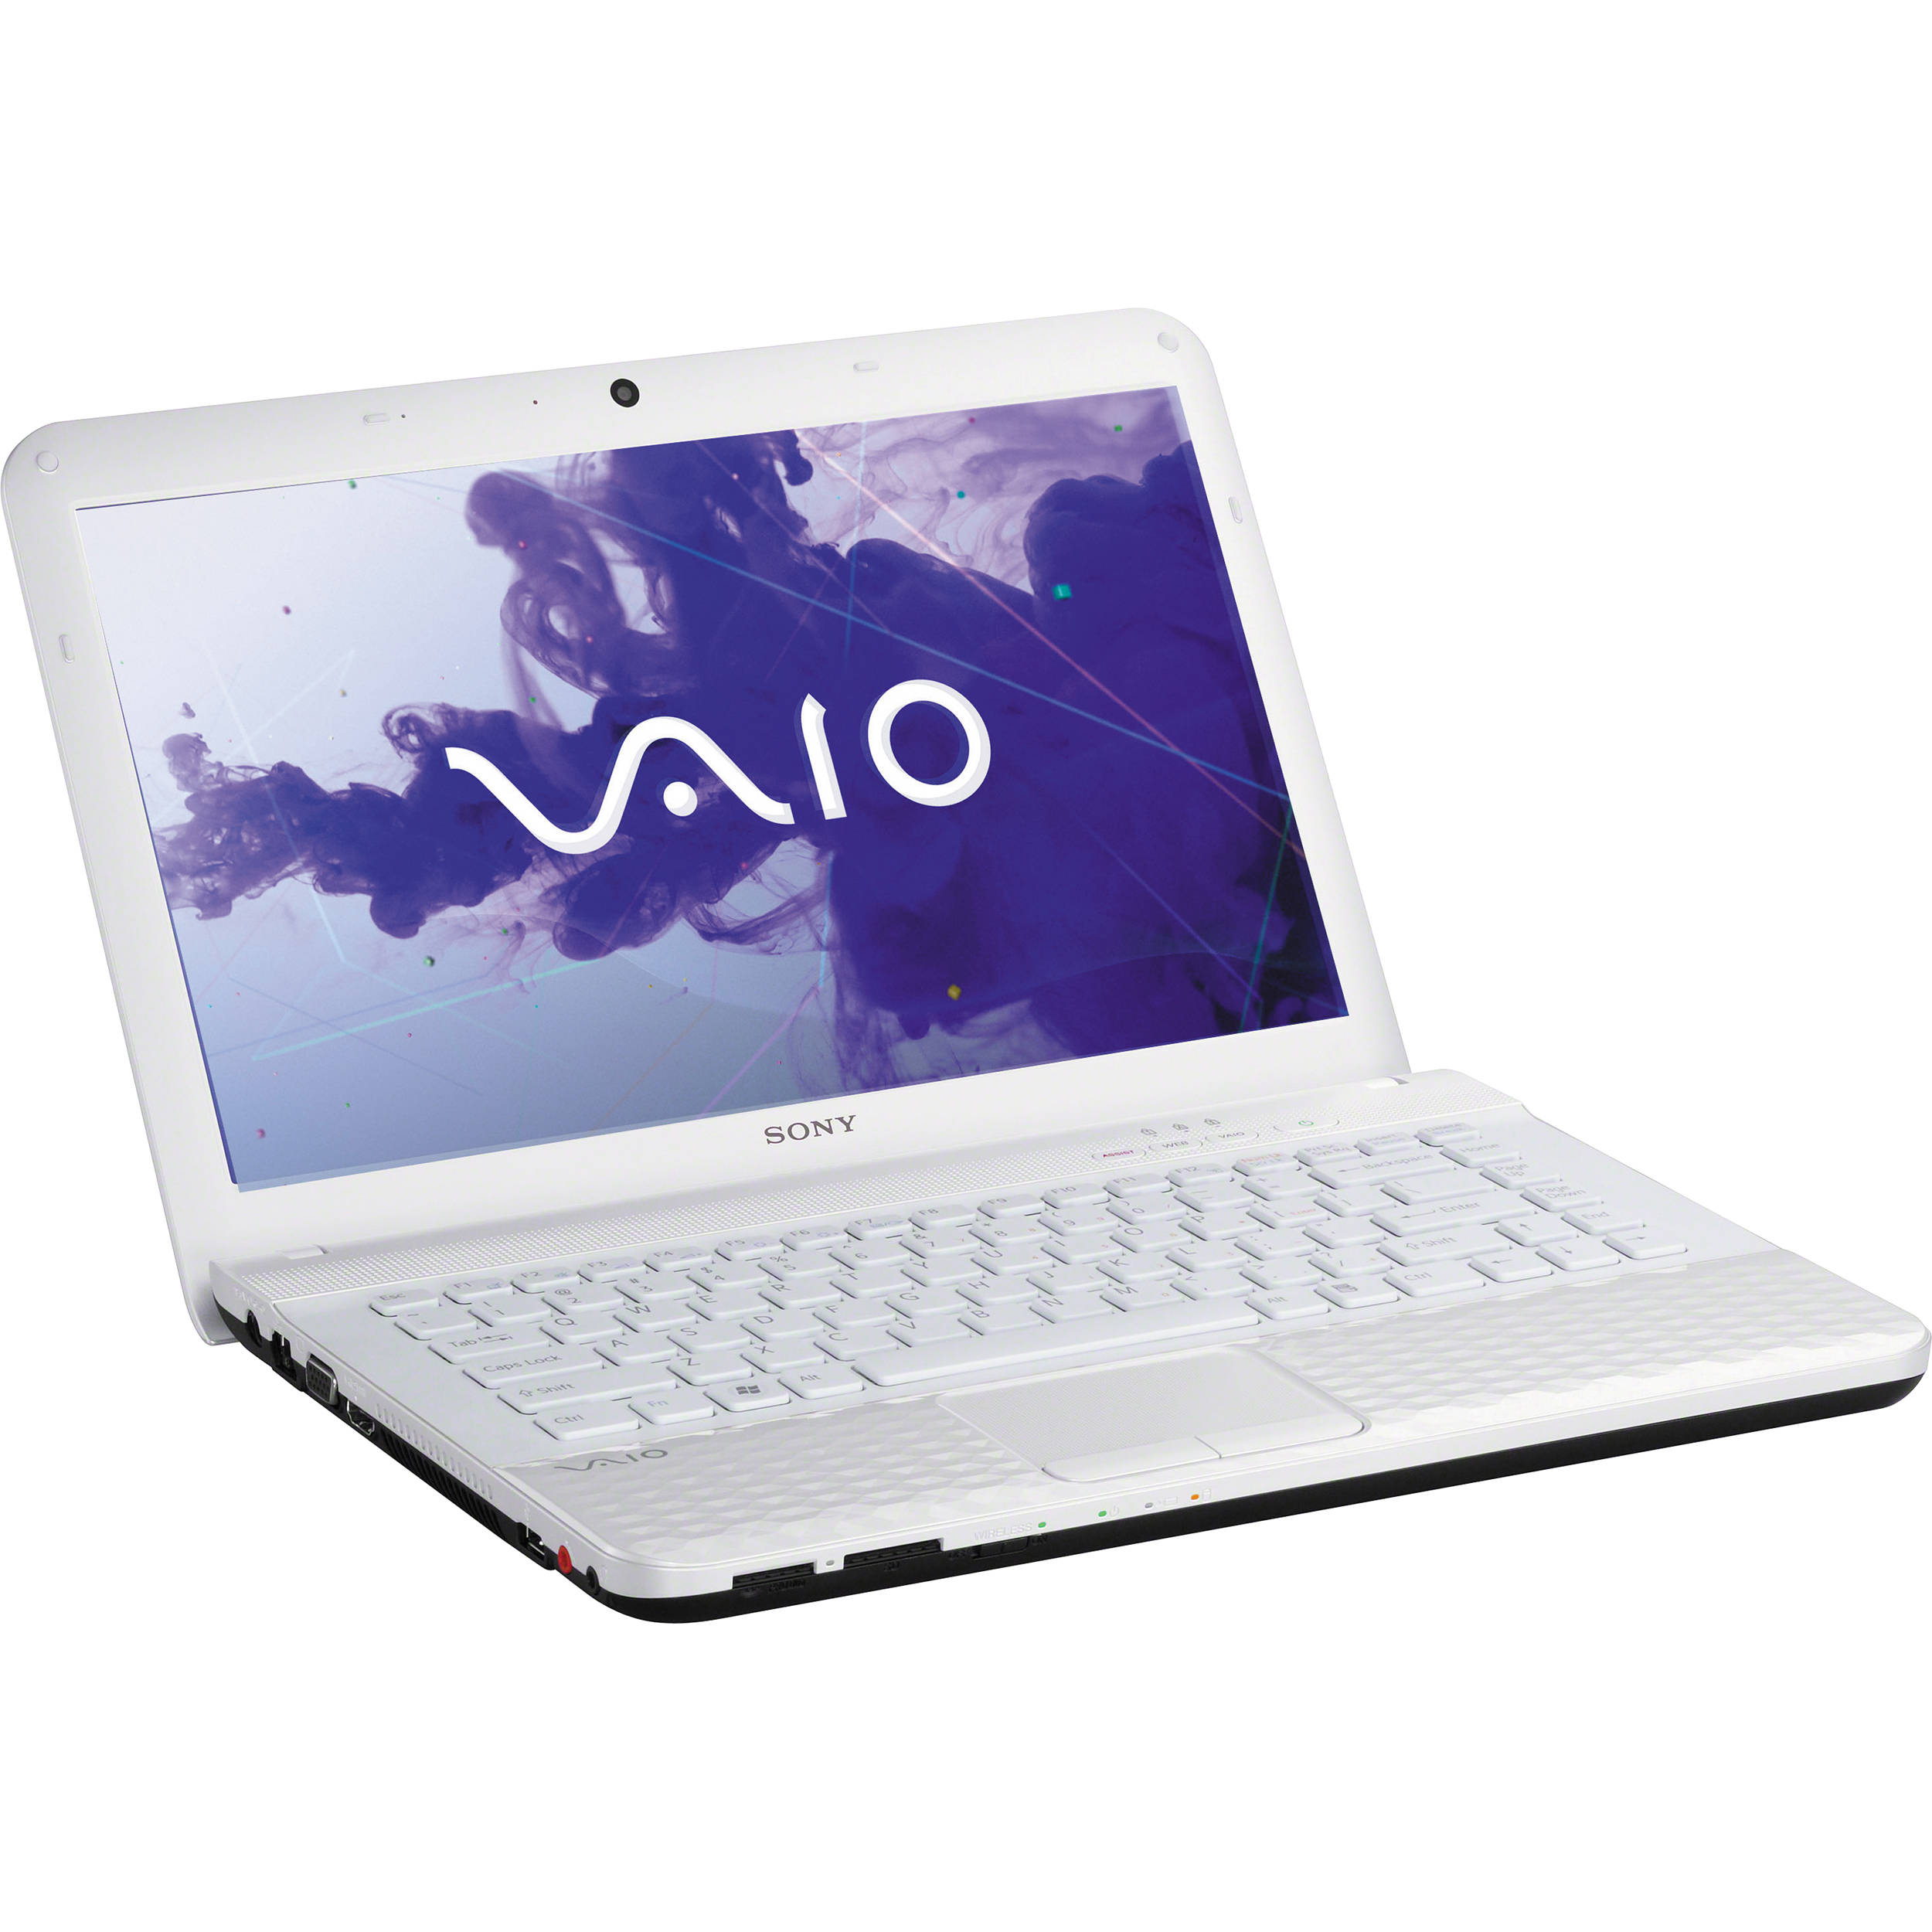 Sony Vaio VPCEG33FX Battery Checker Drivers for Windows Download